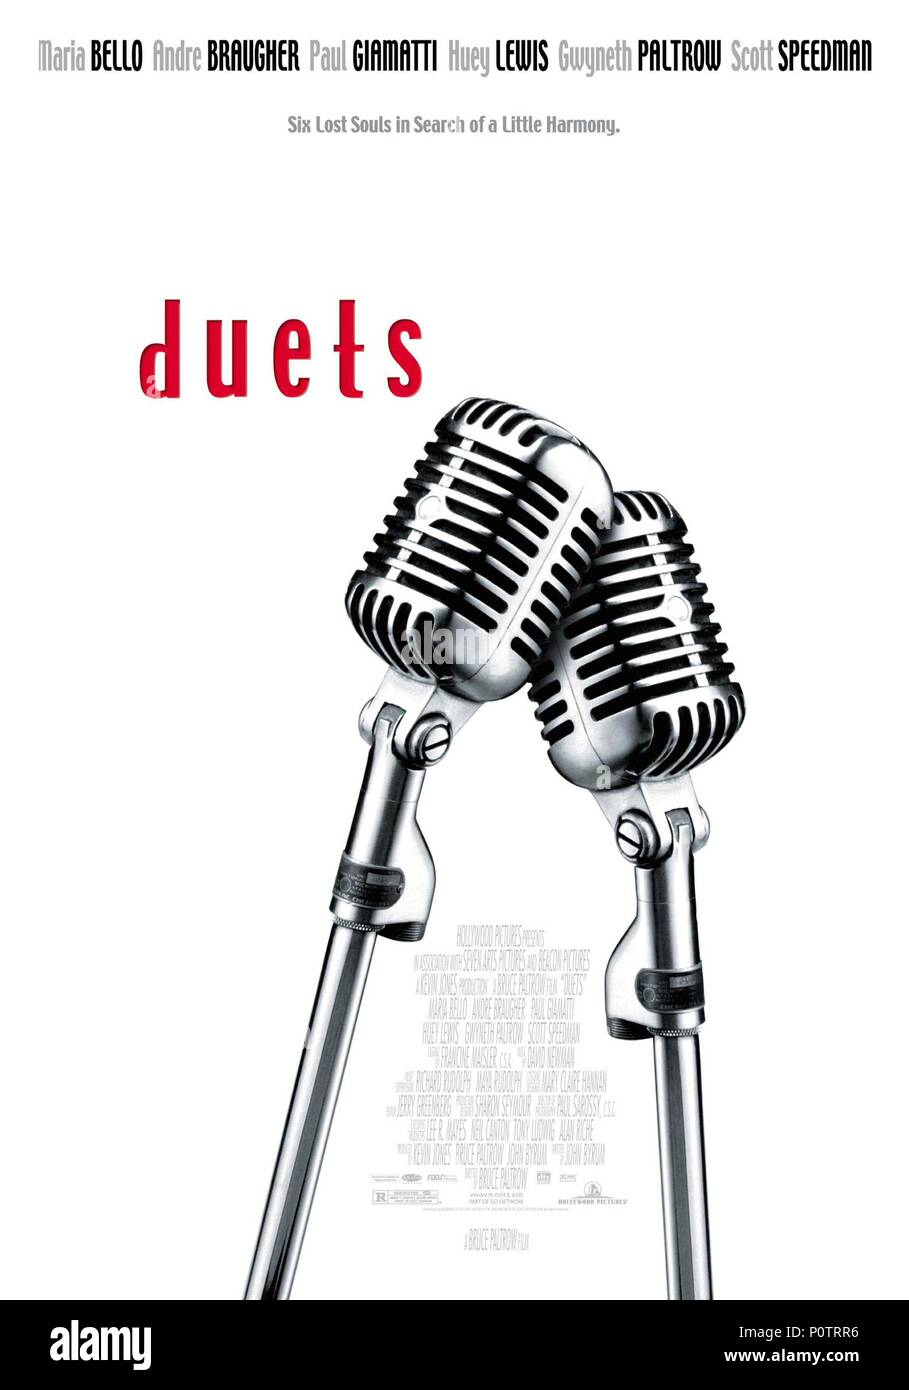 Original Film Title: DUETS.  English Title: DUETS.  Film Director: BRUCE PALTROW.  Year: 2000. Credit: HOLLYWOOD PICTURES / Album - Stock Image